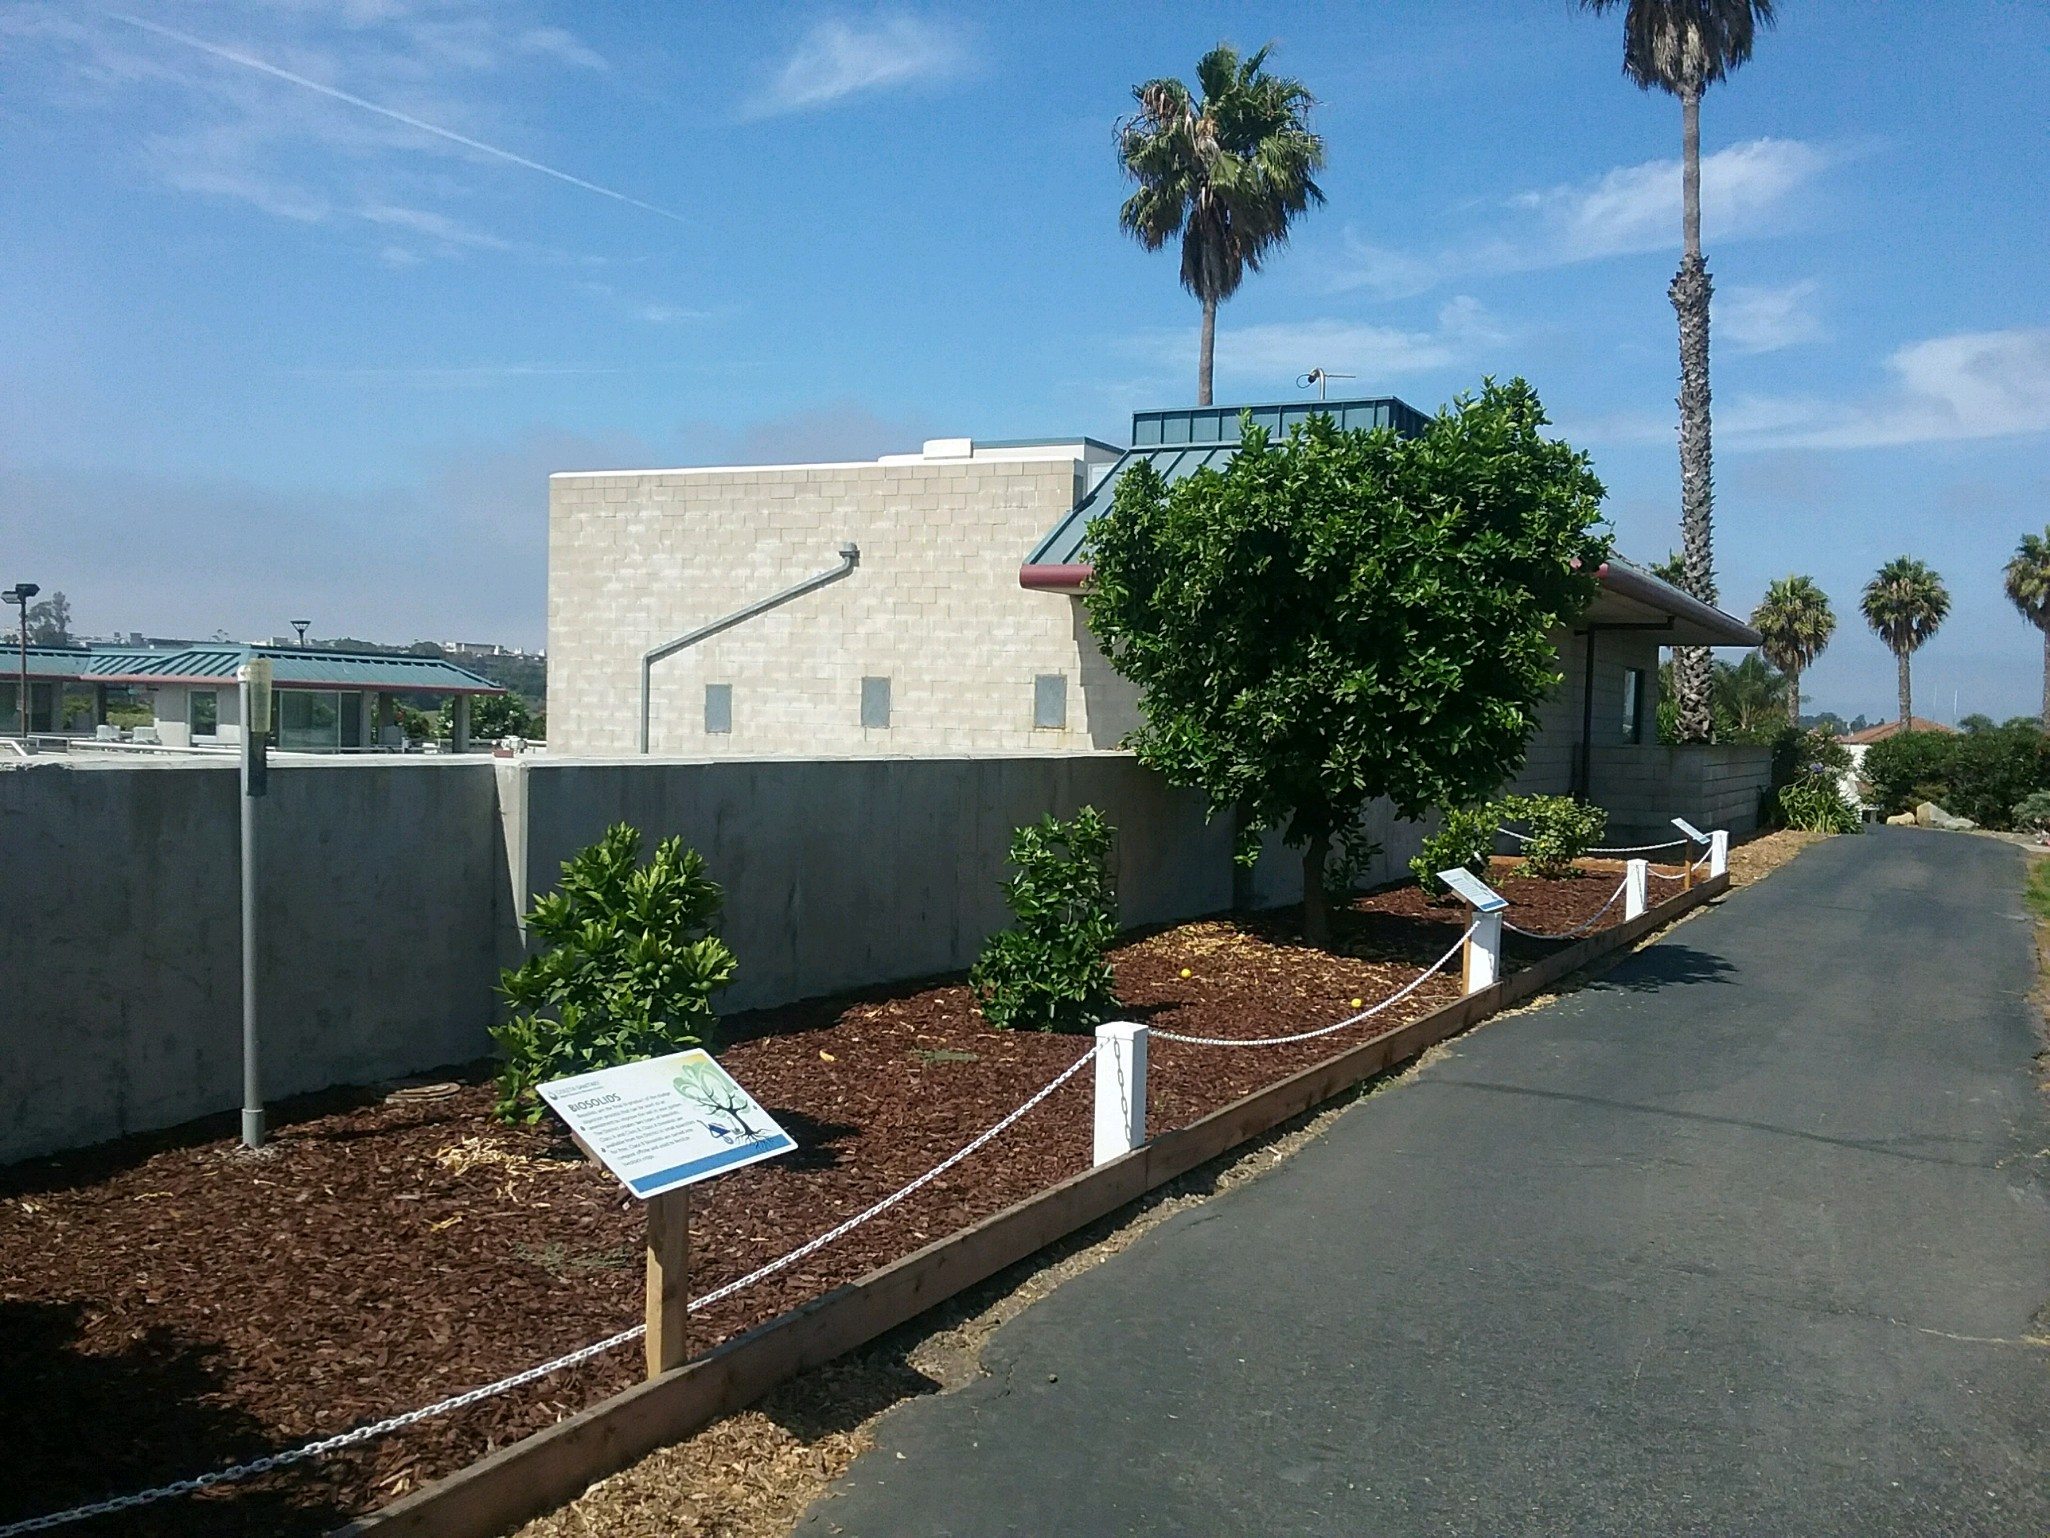 Goleta Sanitary District Demonstration Garden for Resource Recovery